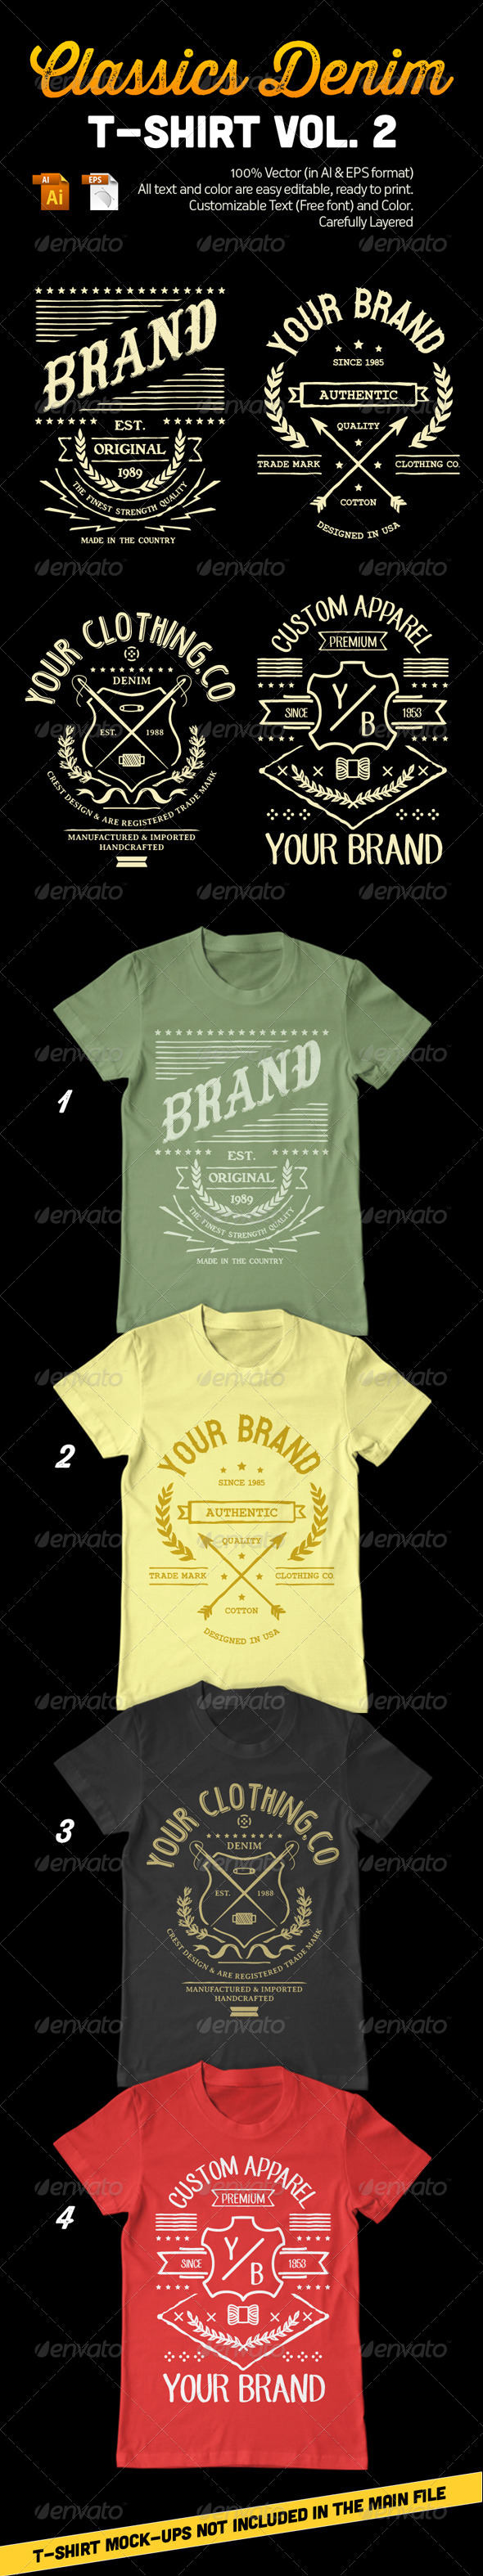 GraphicRiver Classics Denim T-Shirt Vol 2 8256379